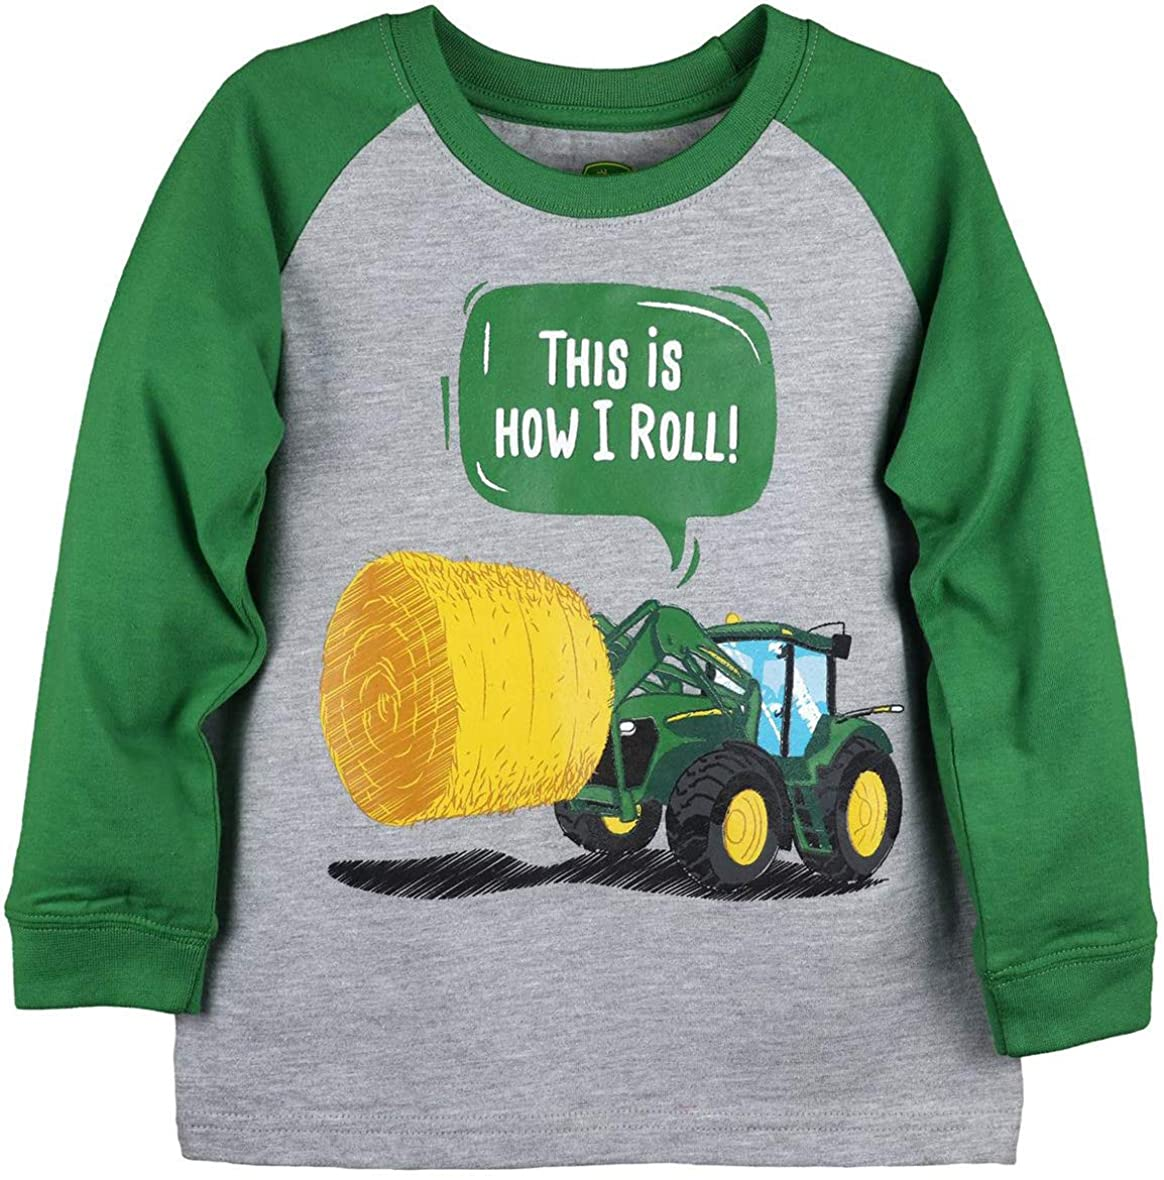 John Deere Toddler Size Gray and Green Long Sleeve This is How I Roll Tractor Bale T-Shirt